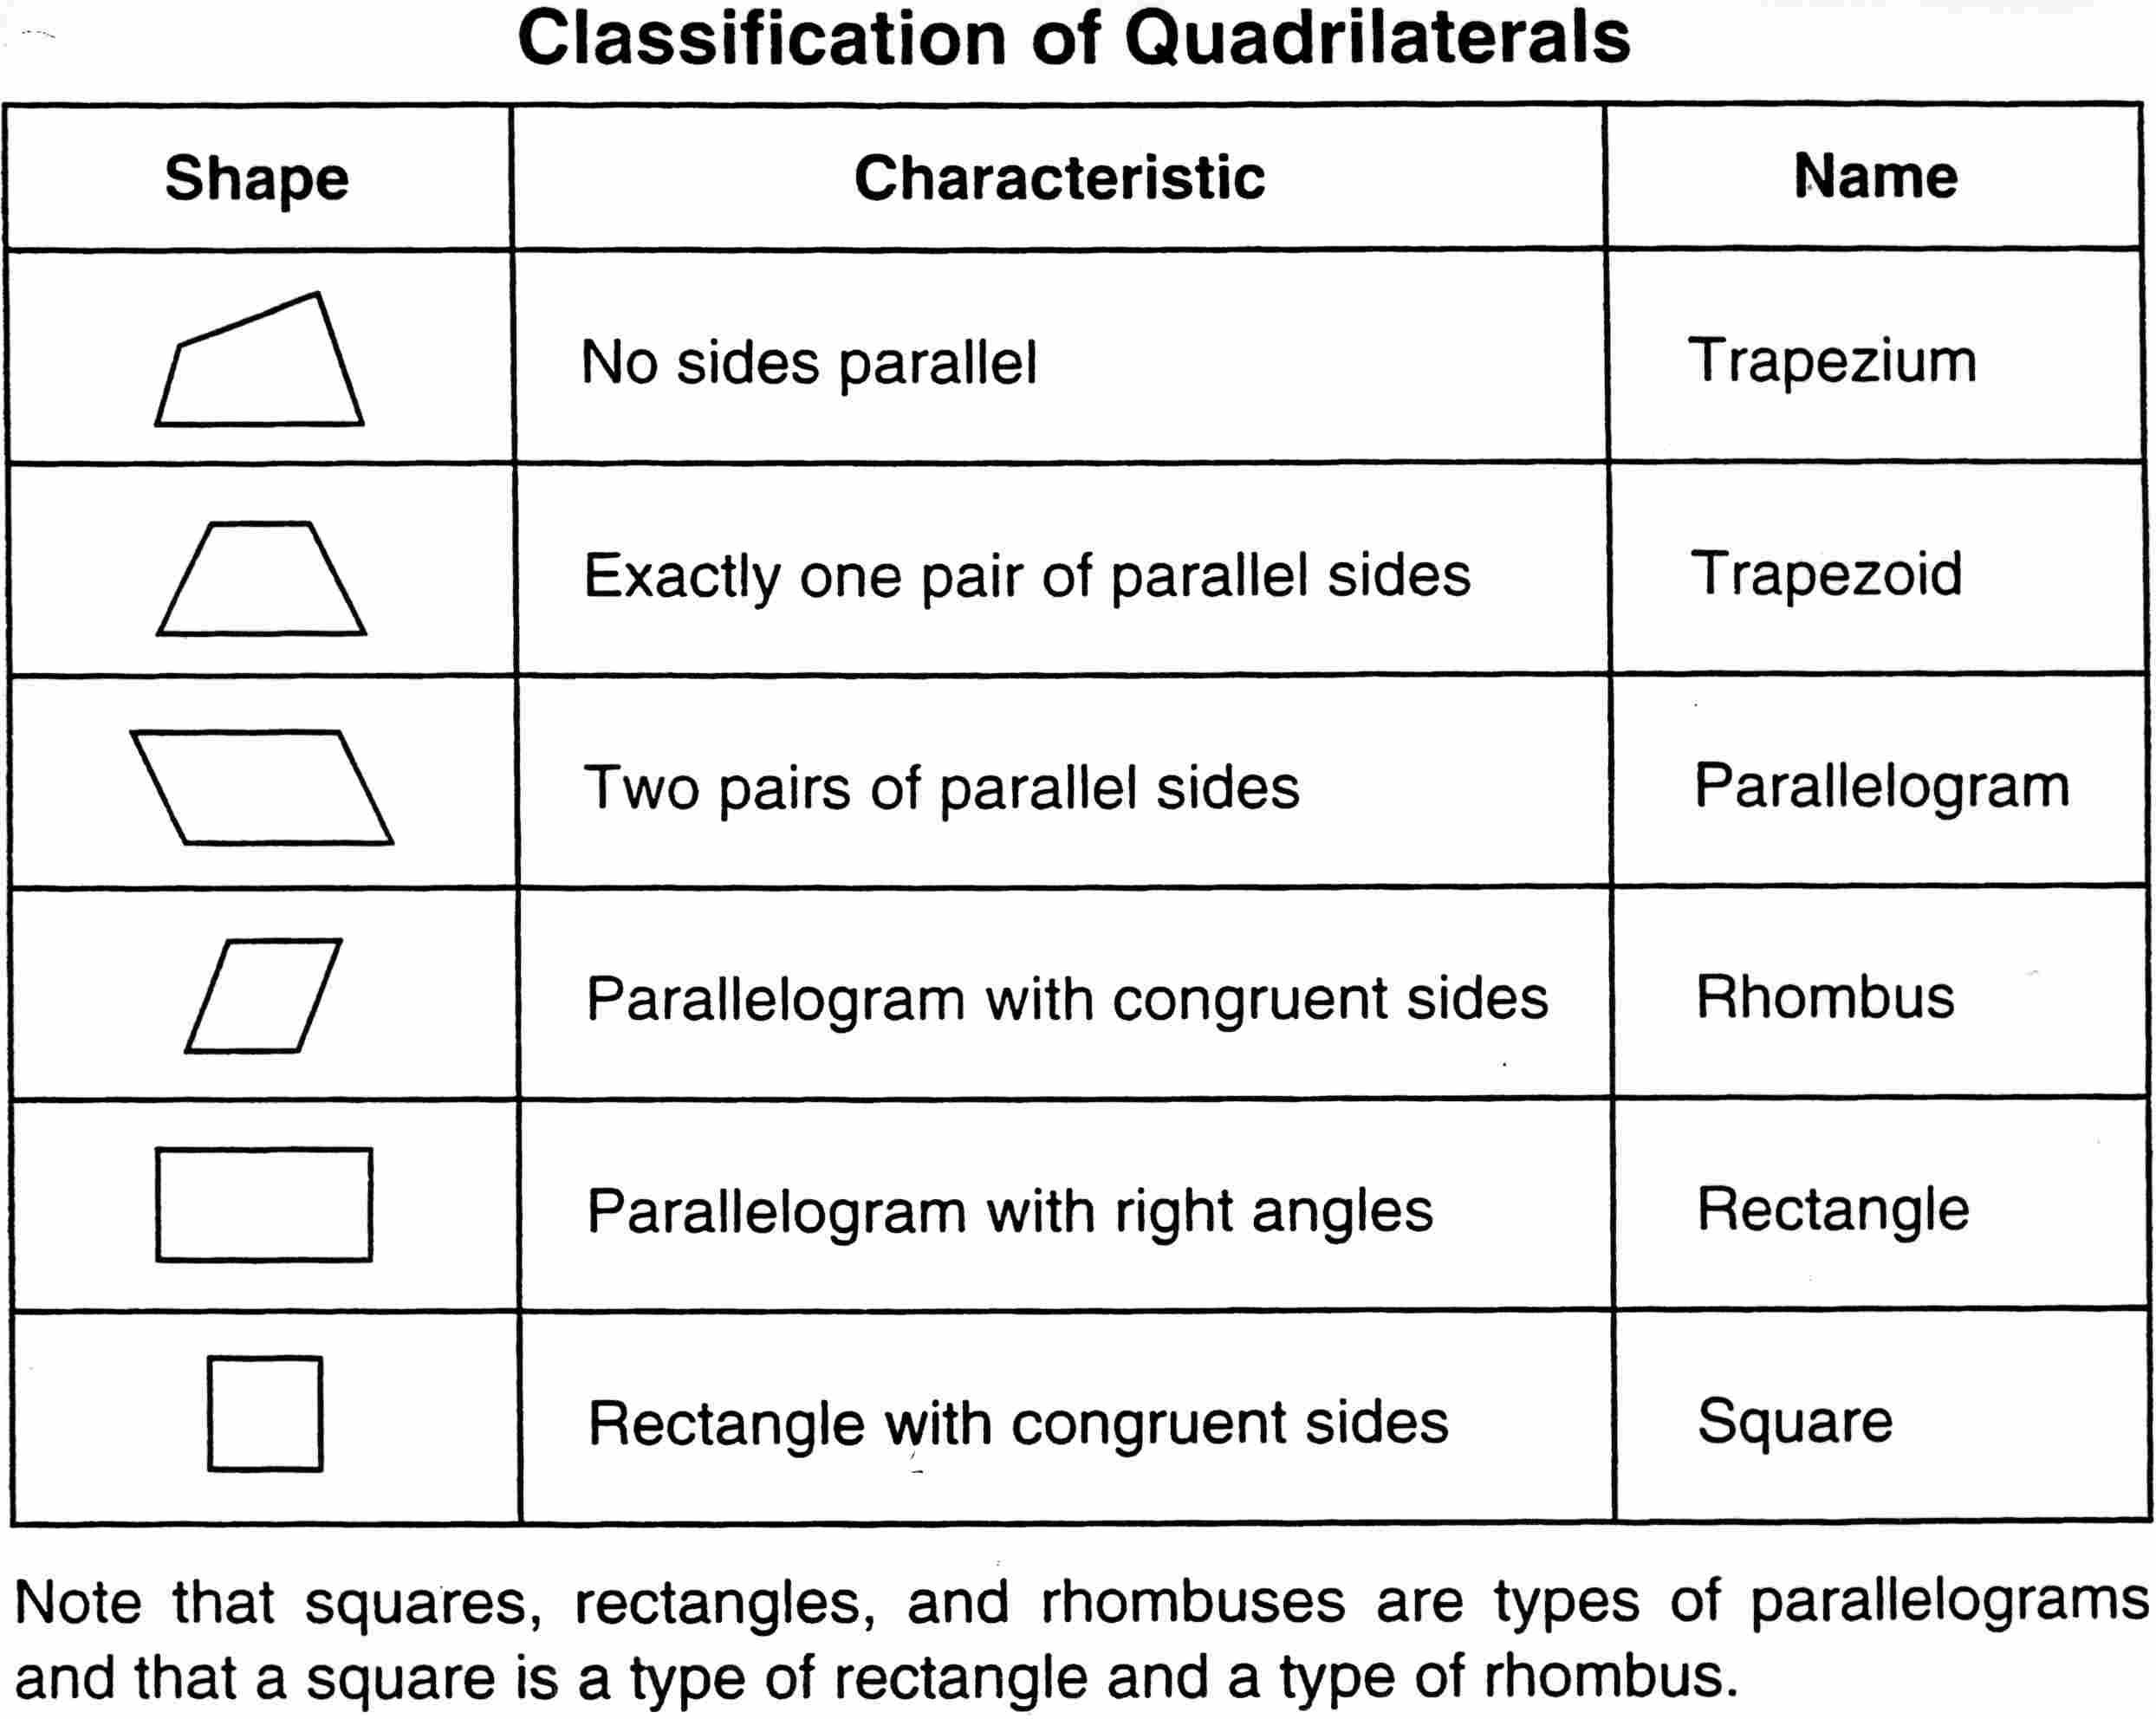 worksheet Identifying Quadrilaterals classifying quadrilaterals math pinterest shape quad and charts quadrilaterals